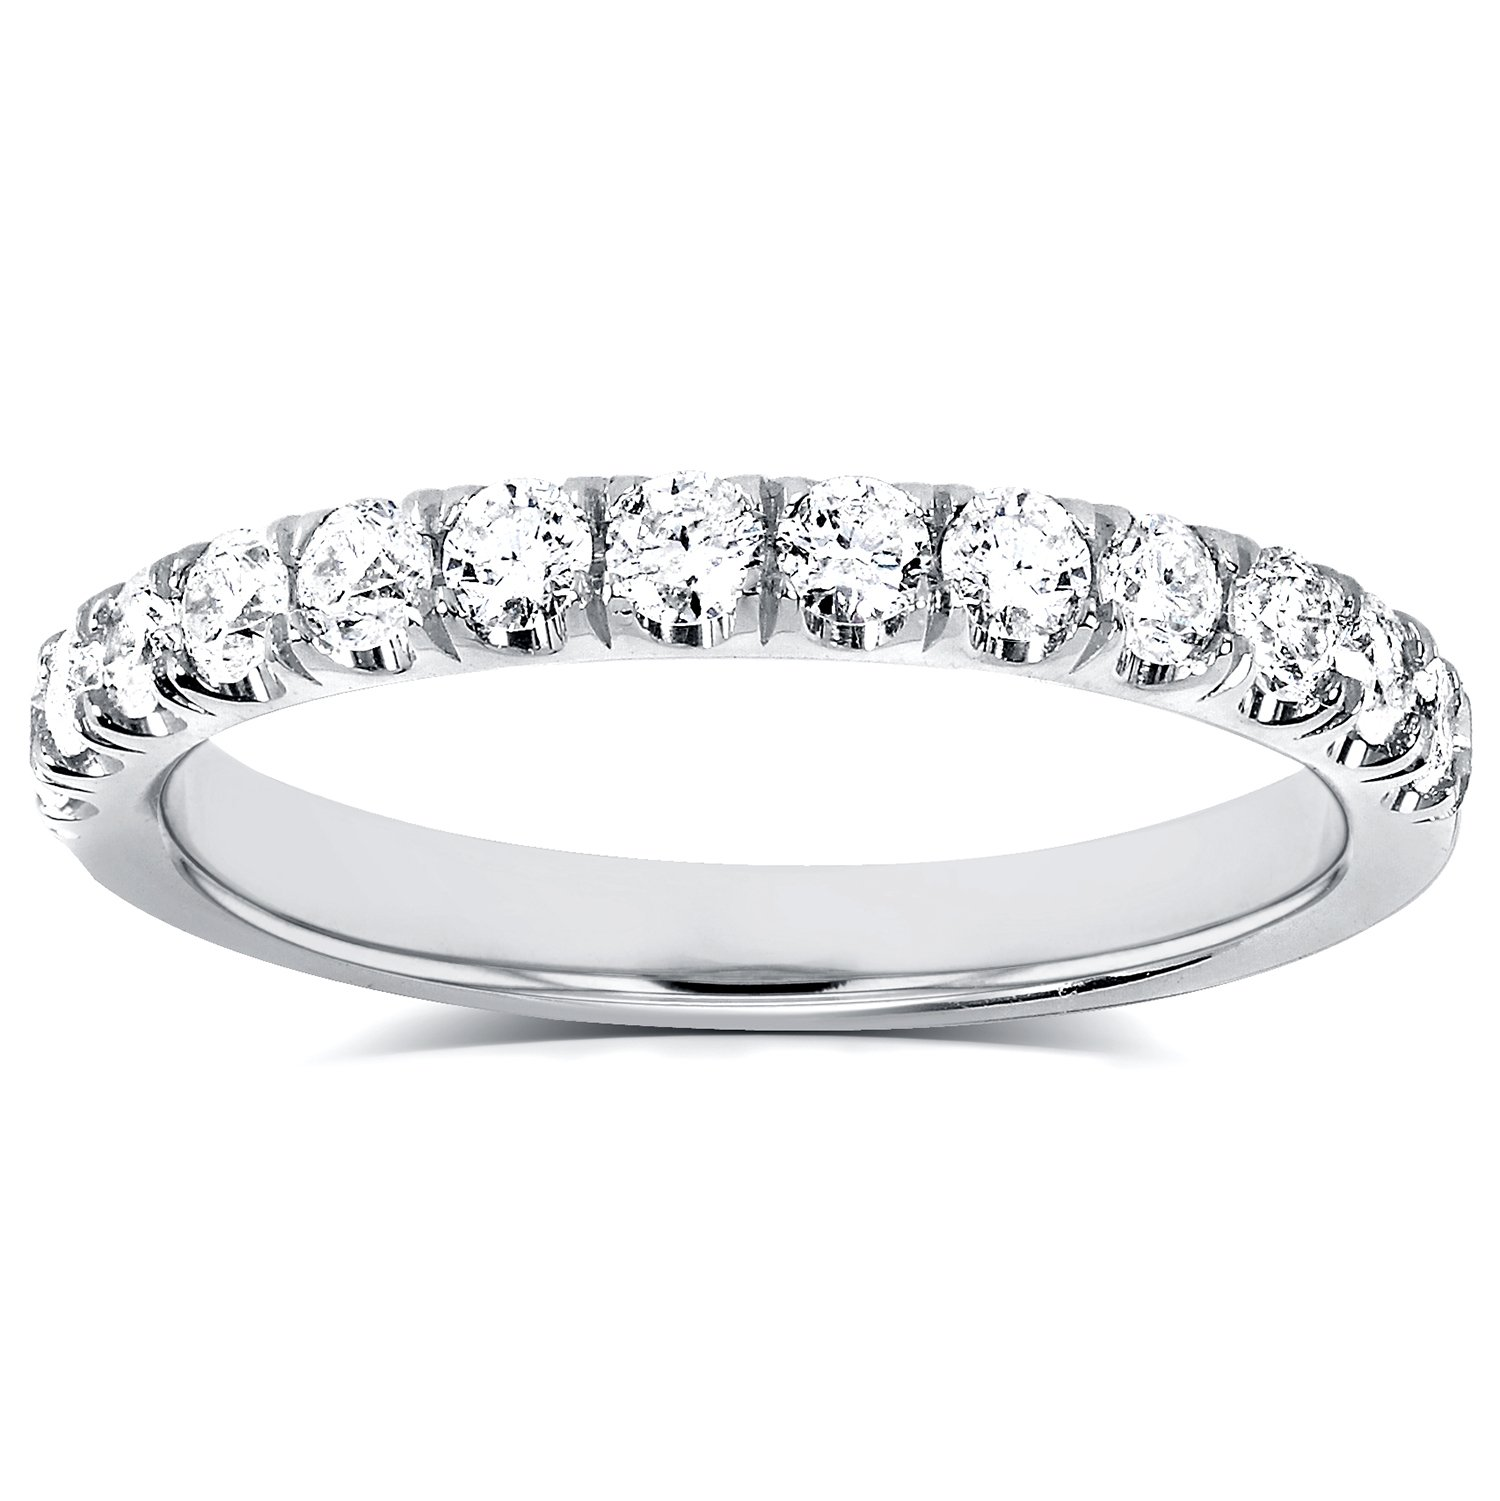 Diamond Comfort Fit Flame French Pave Band 1/2 carat (ctw) in 14K White Gold